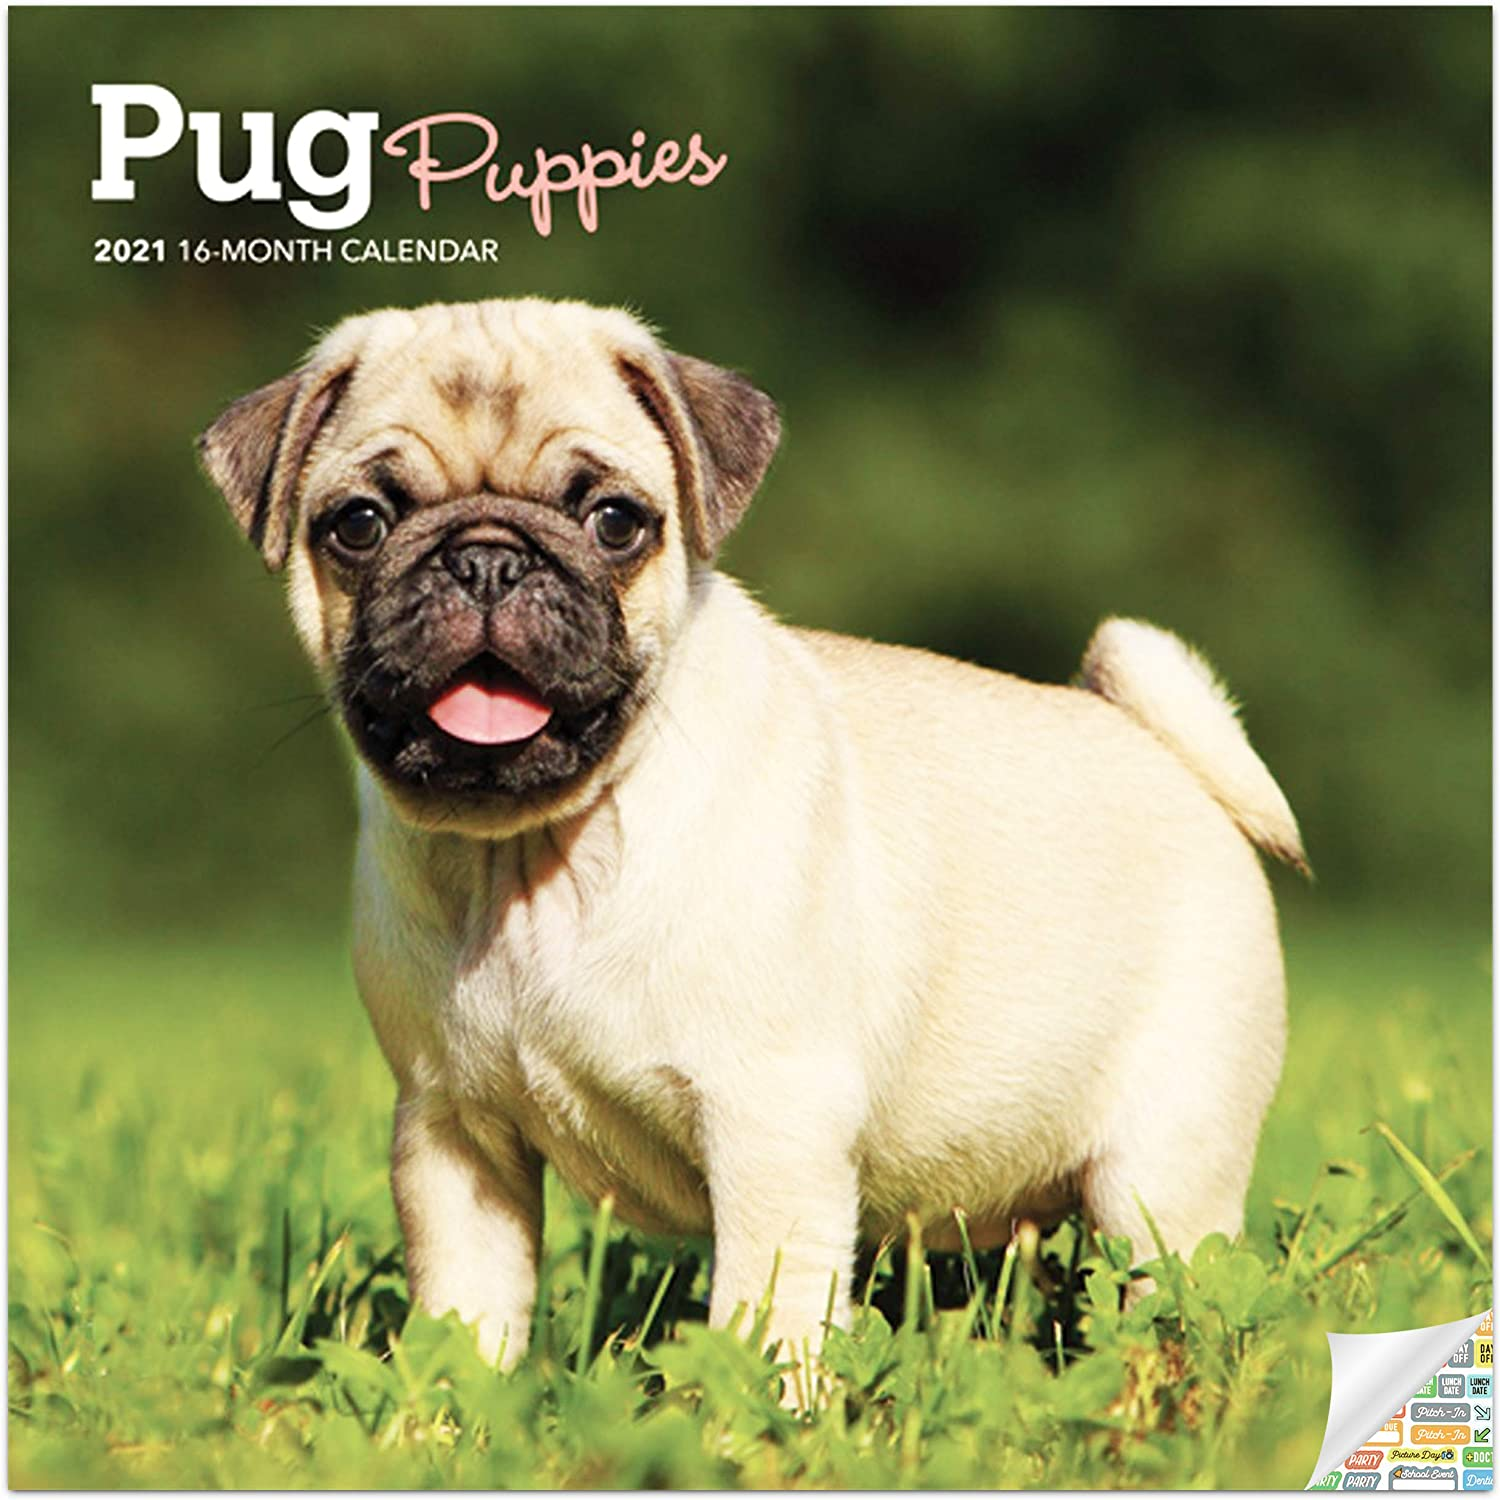 Pug Puppies Calendar 2021 Bundle - Deluxe 2021 Pug Puppies Mini Calendar with Over 100 Calendar Stickers (Puppy Gifts, Office Supplies)